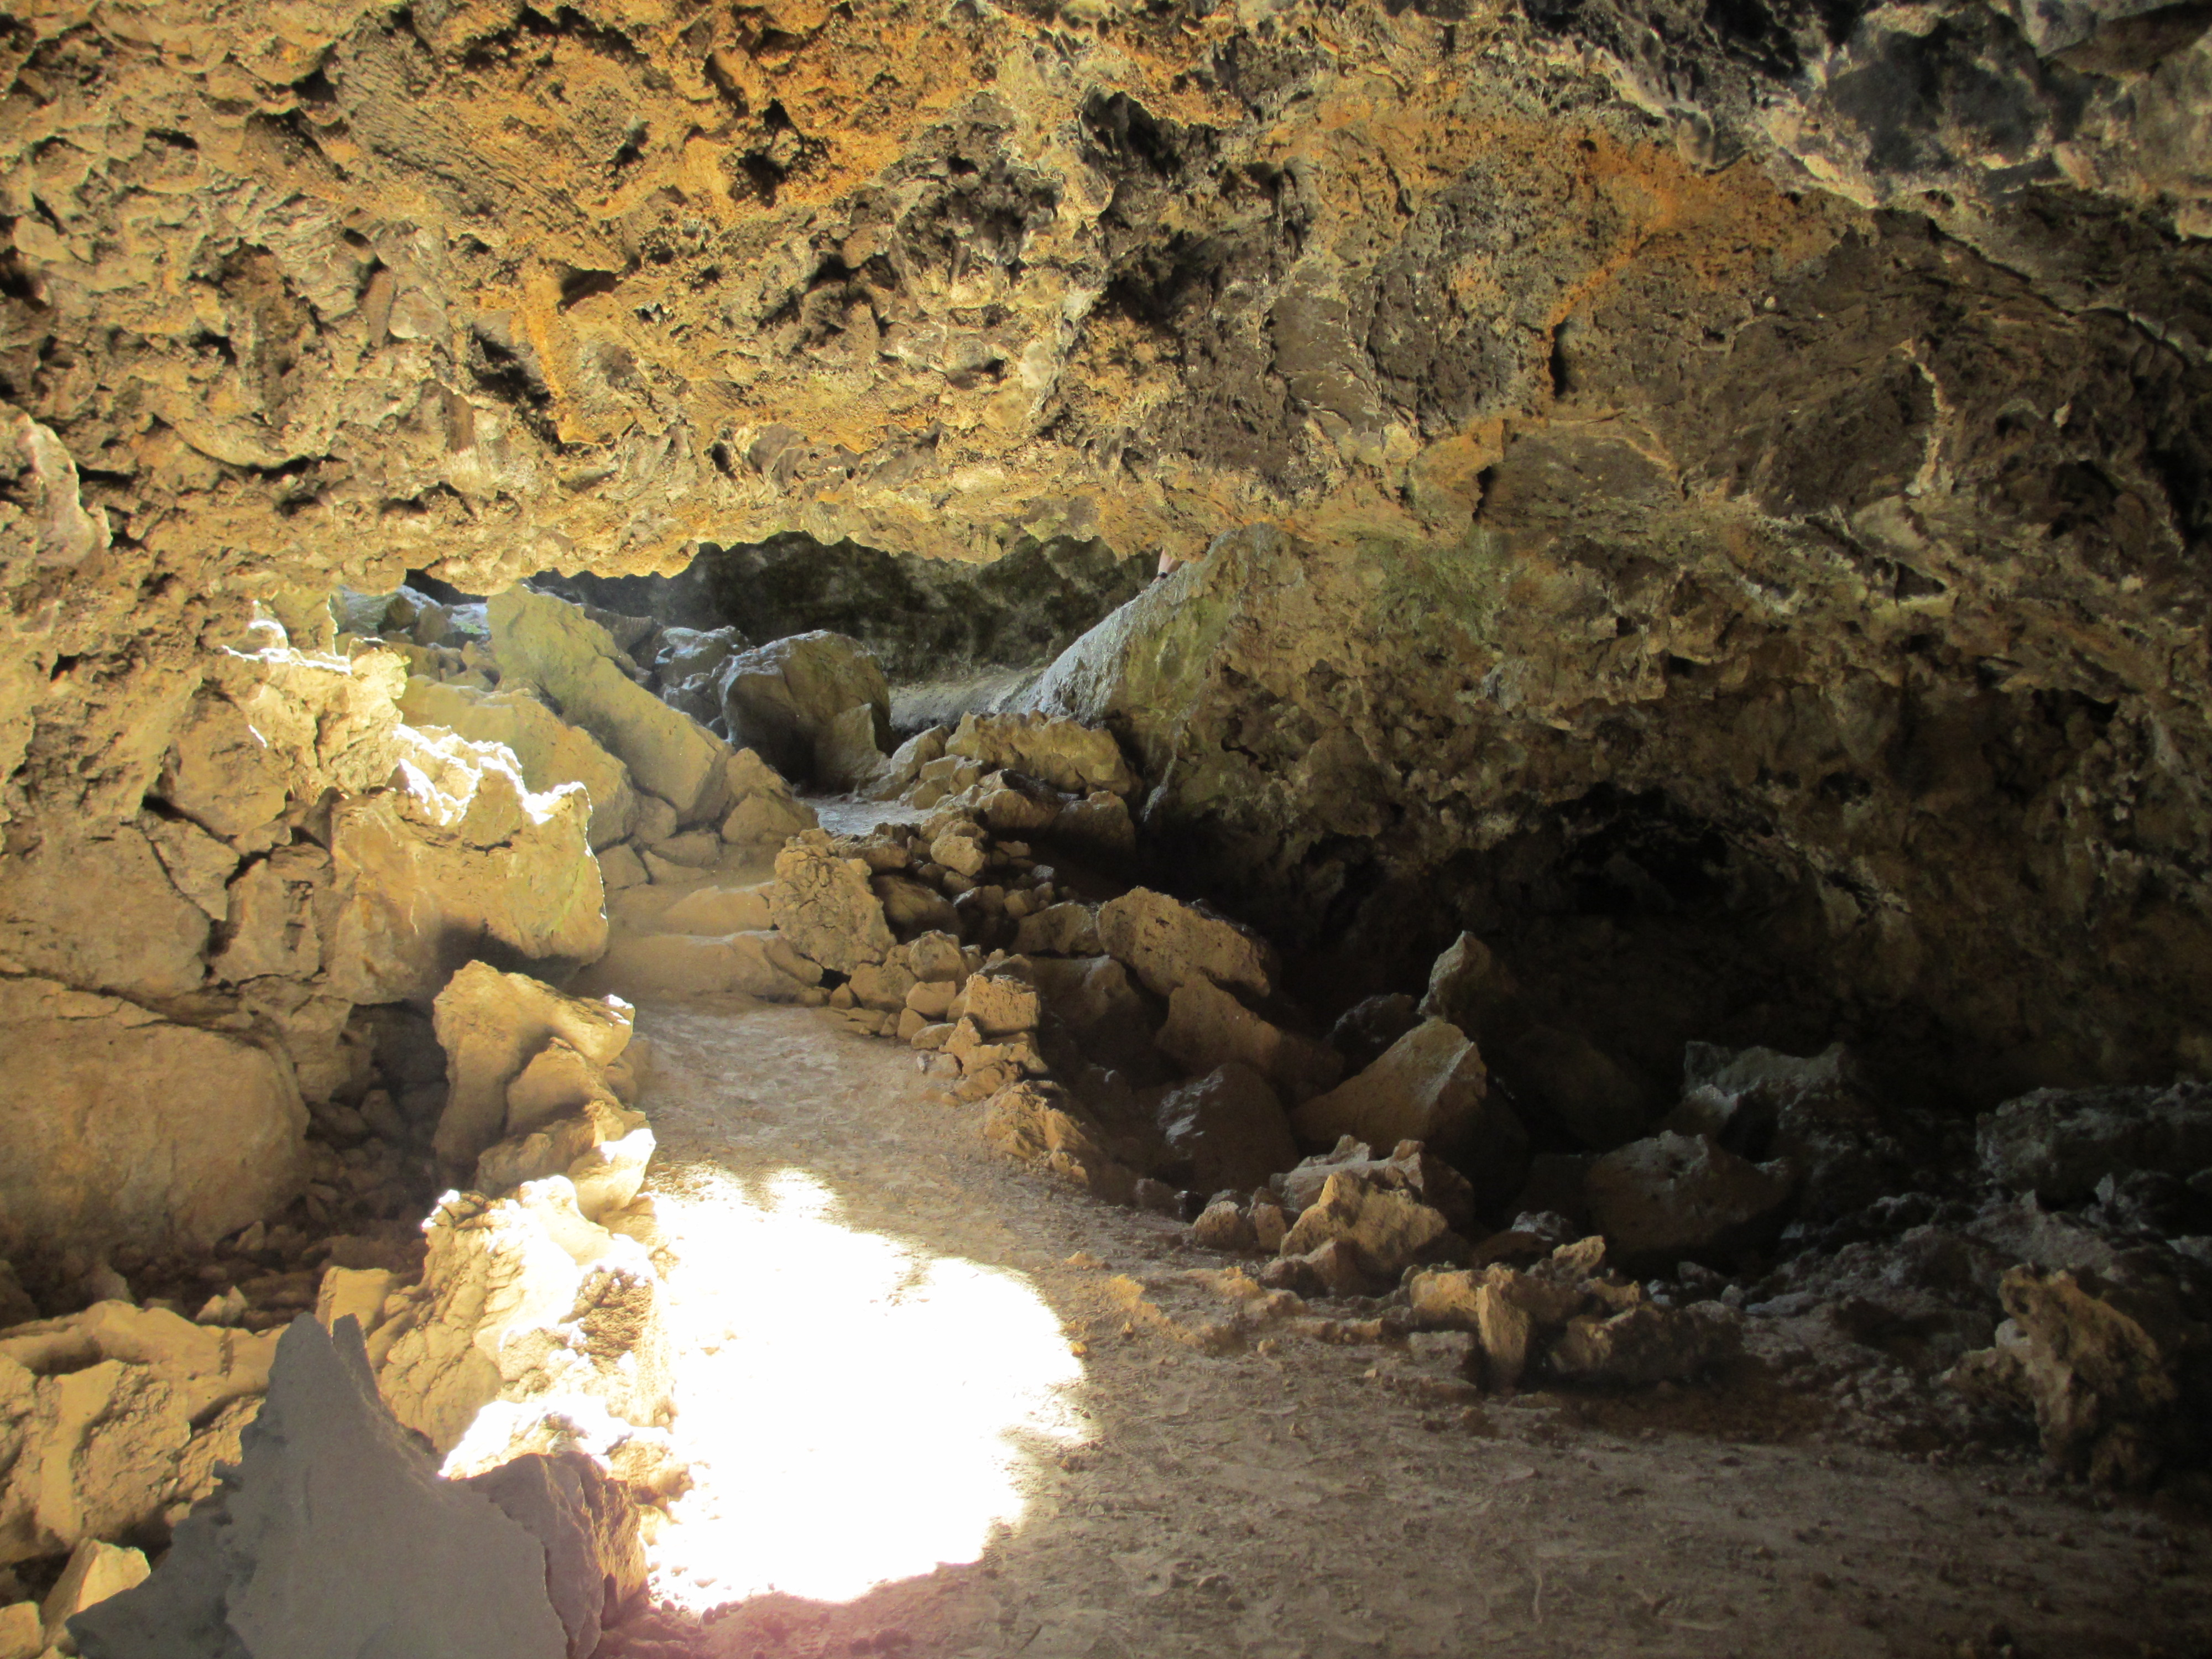 Lava_Beds_National_Monument_in_summer_2012_(10)